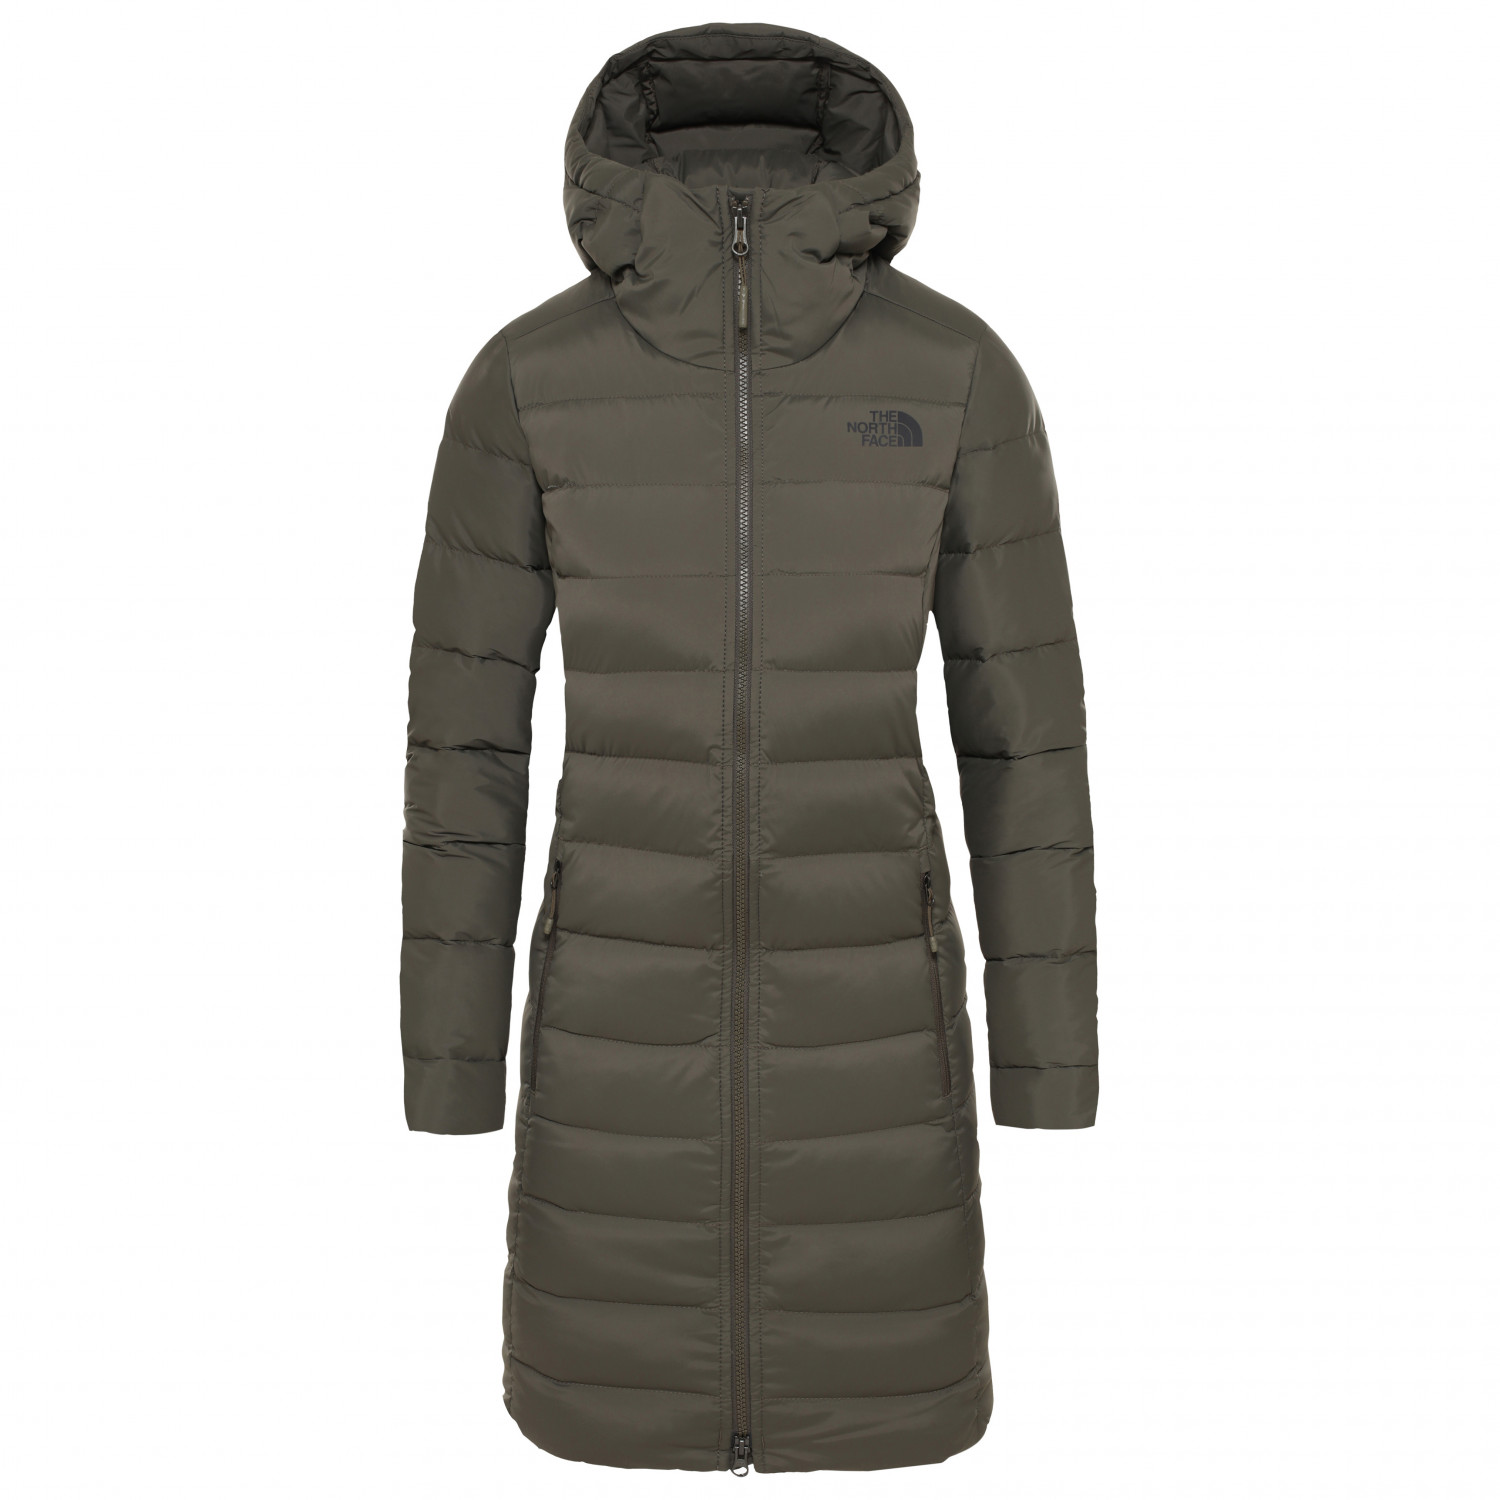 The New Parka North Taupe Stretch Face Down Women's GreenXs UqMpLSVzG